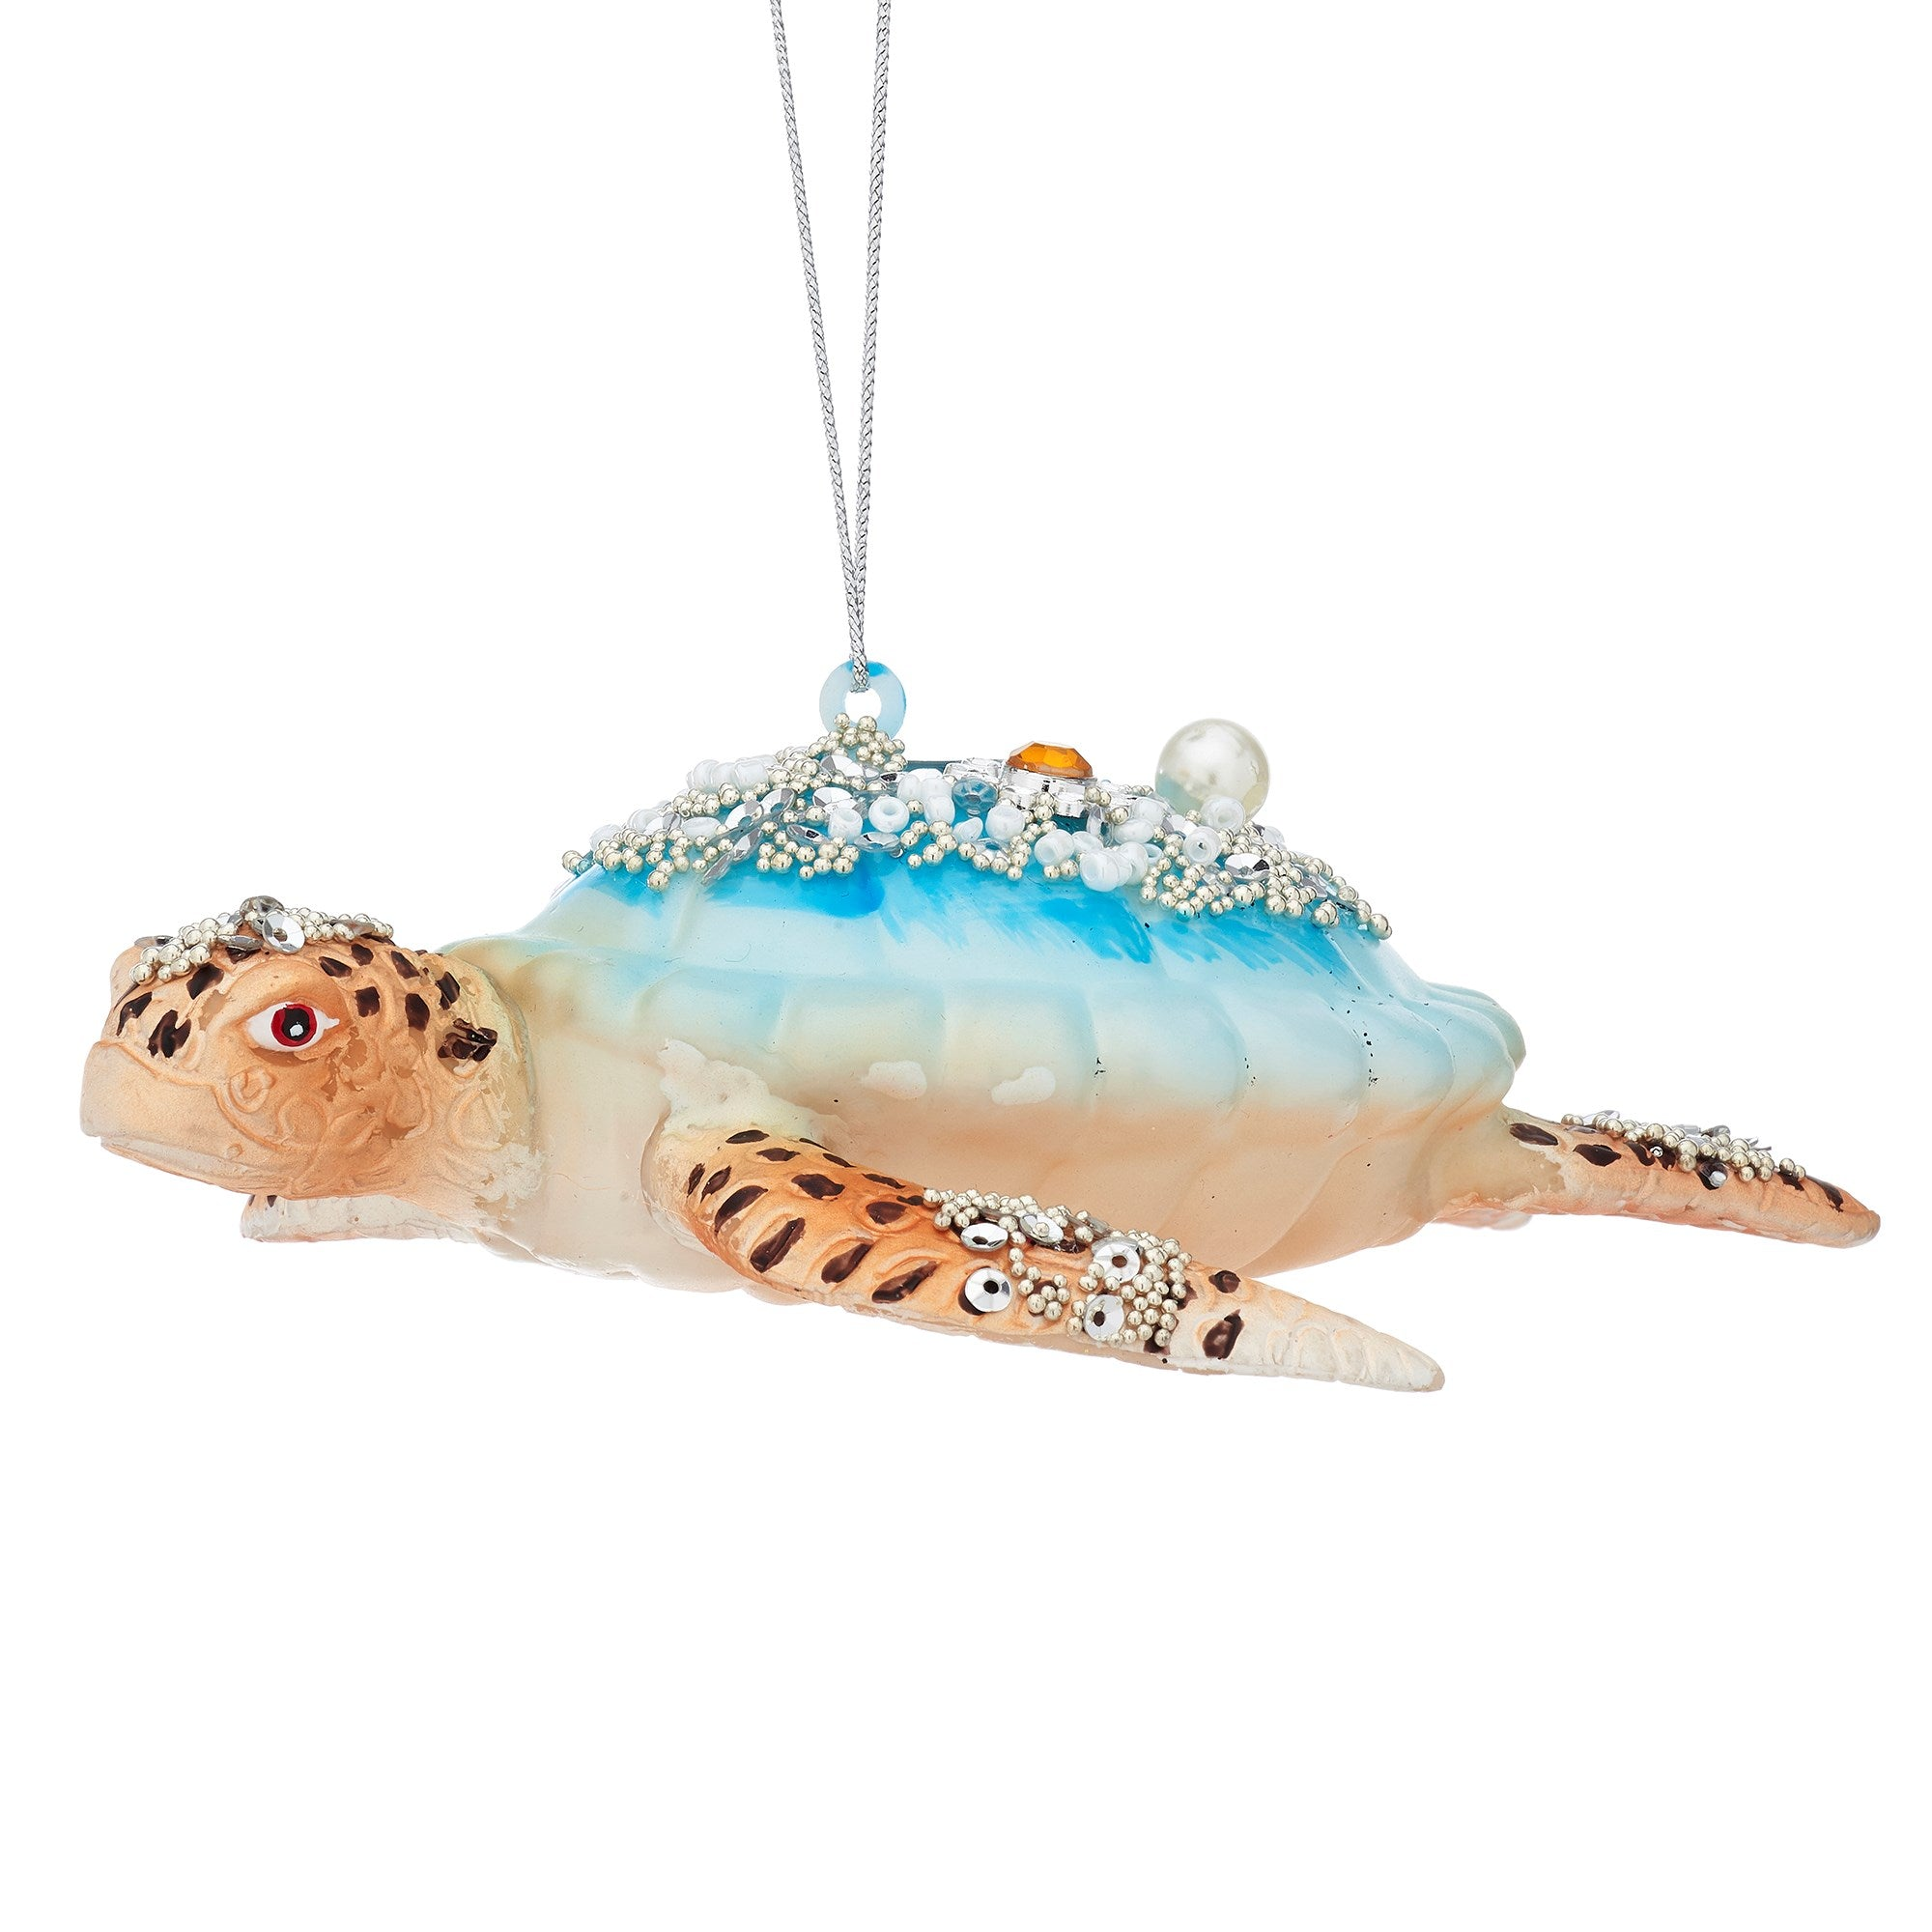 Turtle Glass Ornament | Putti Christmas Decorations